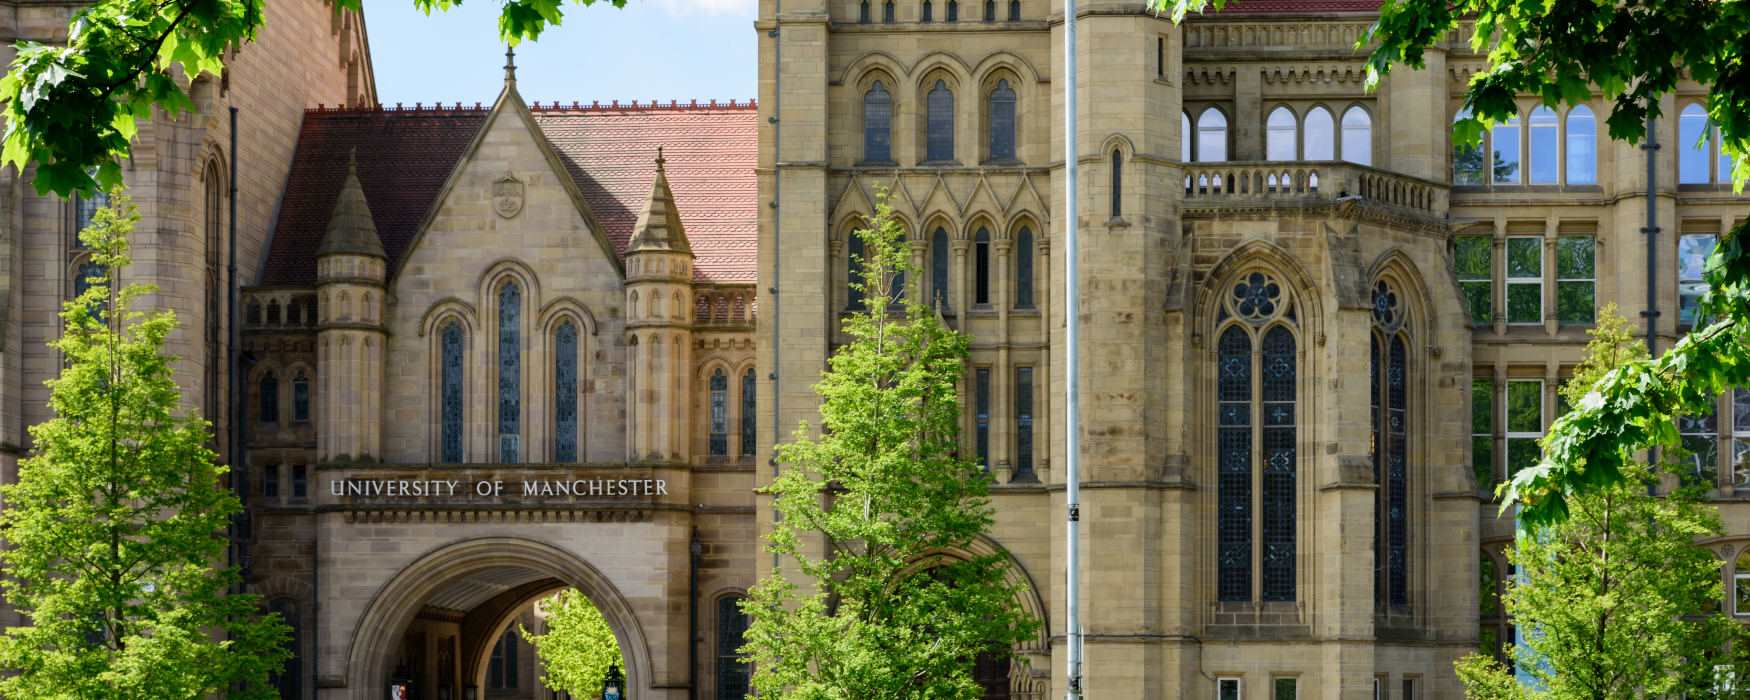 The University of Manchester exterior